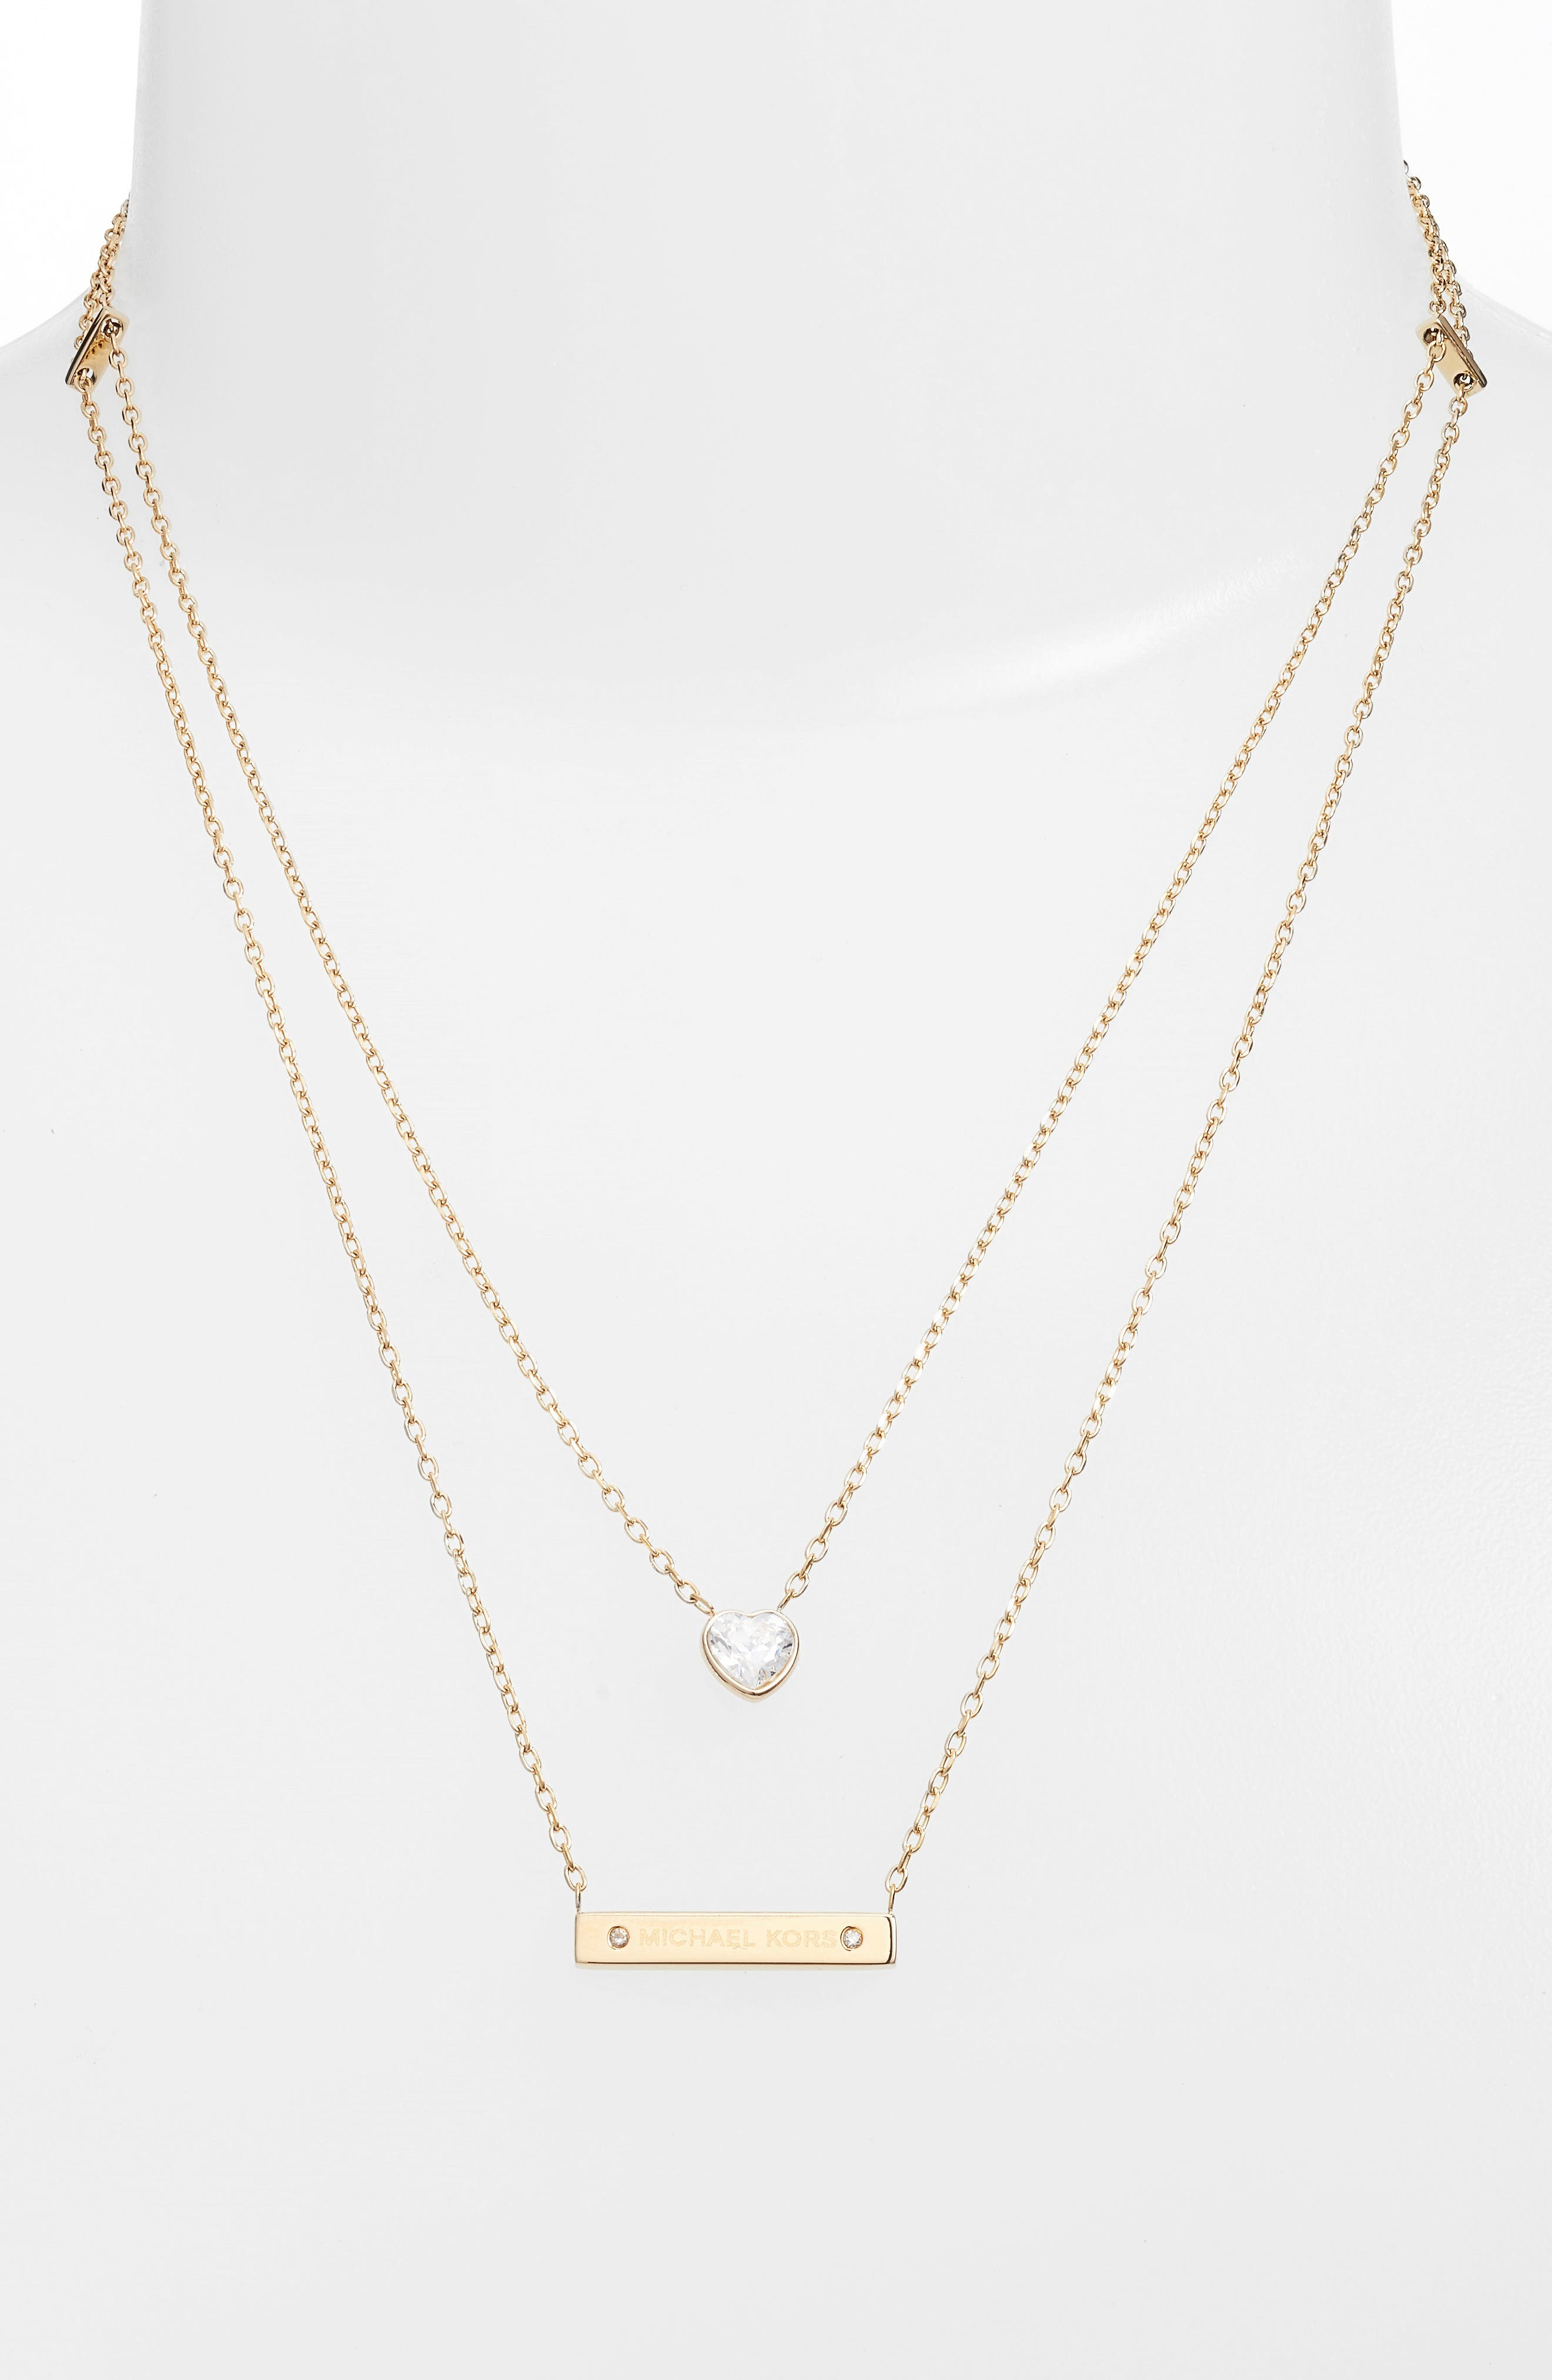 Alternate Image 1 Selected - Michael Kors Multistrand Pendant Necklace